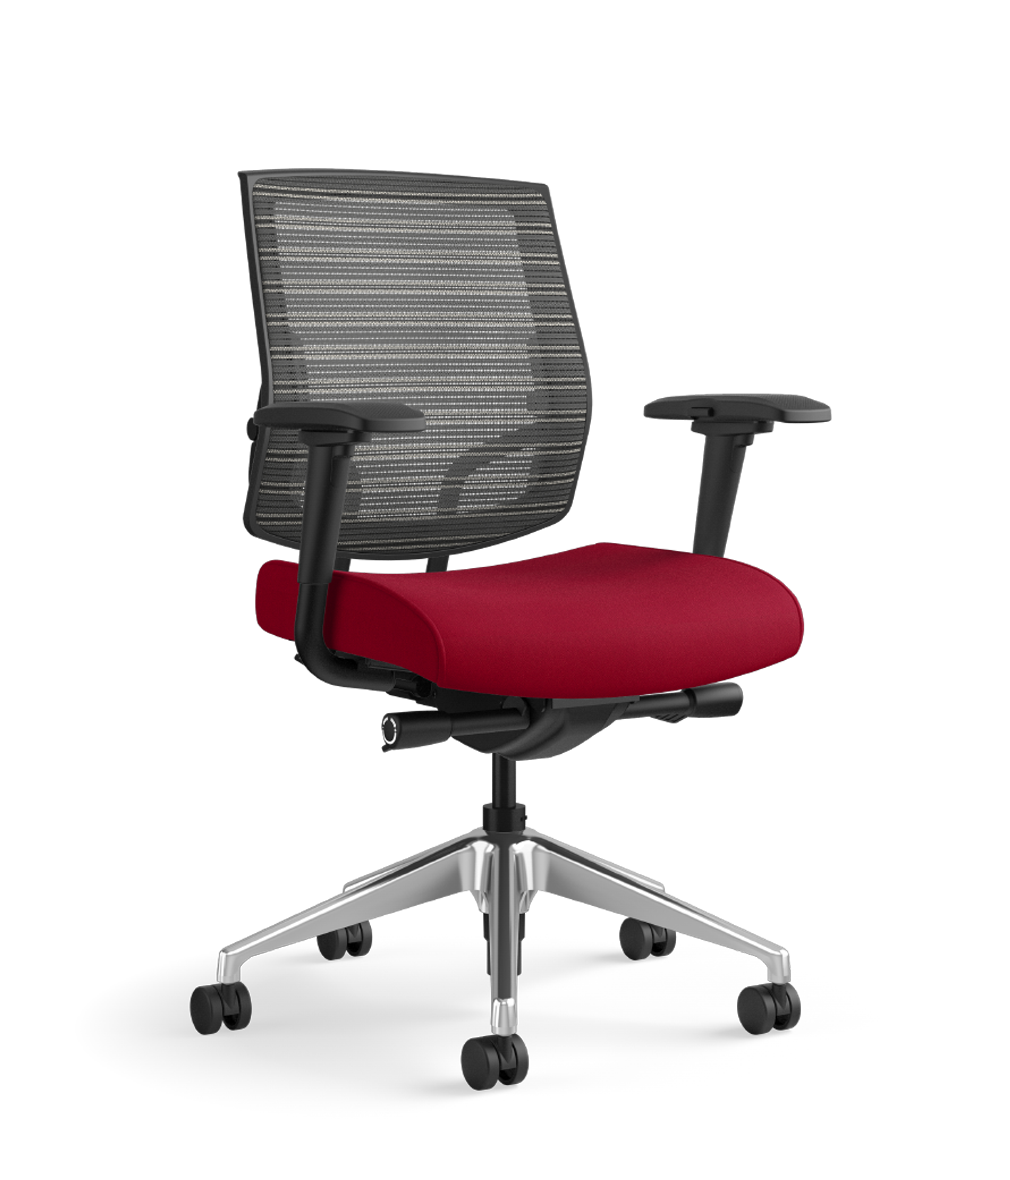 Download Office Chair Png Image For Free Discover 5067 free chair png images with transparent backgrounds. download office chair png image for free